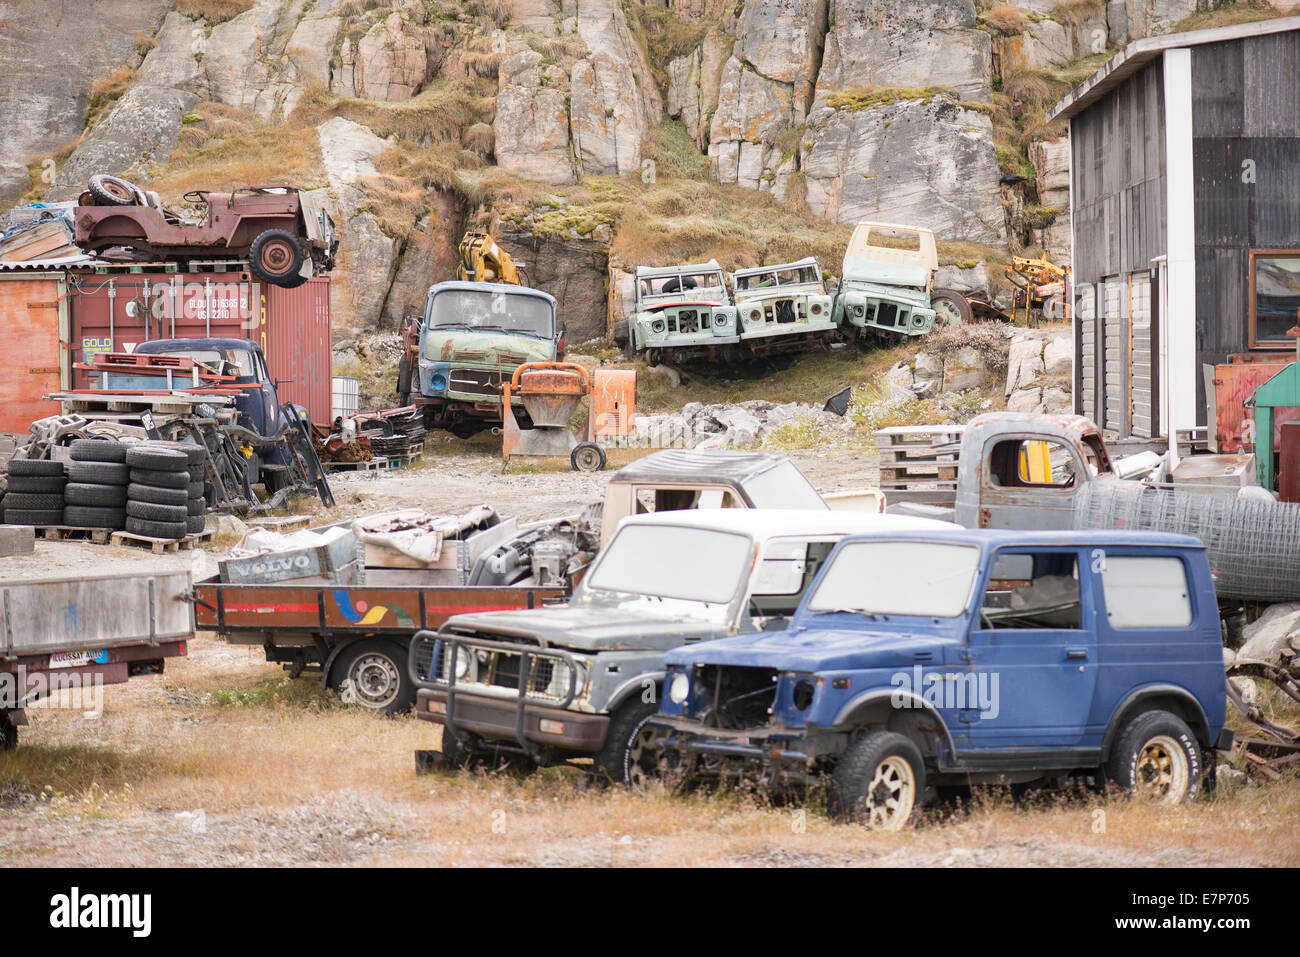 old discarded wrecked cars in greenland with army jeeps